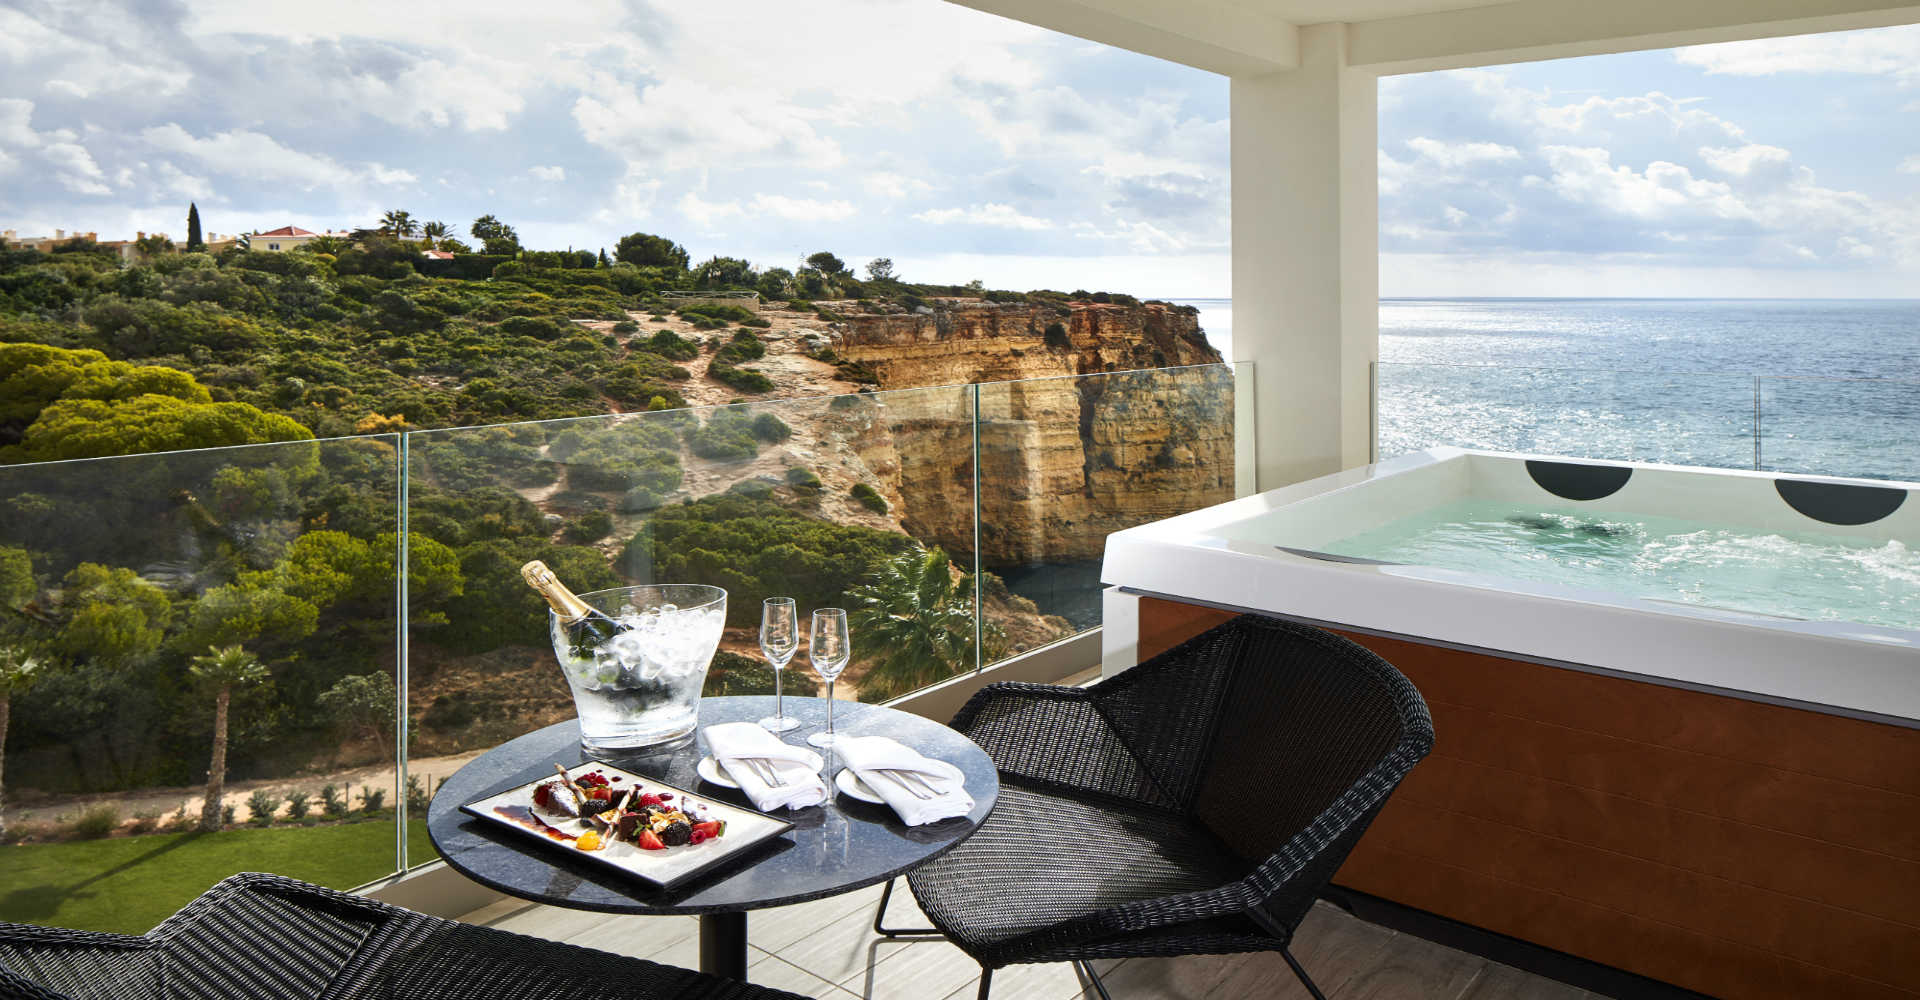 Tivoli Hotels In The Algarve Stay And Dine Tivoli Carvoeiro Algarve Resort